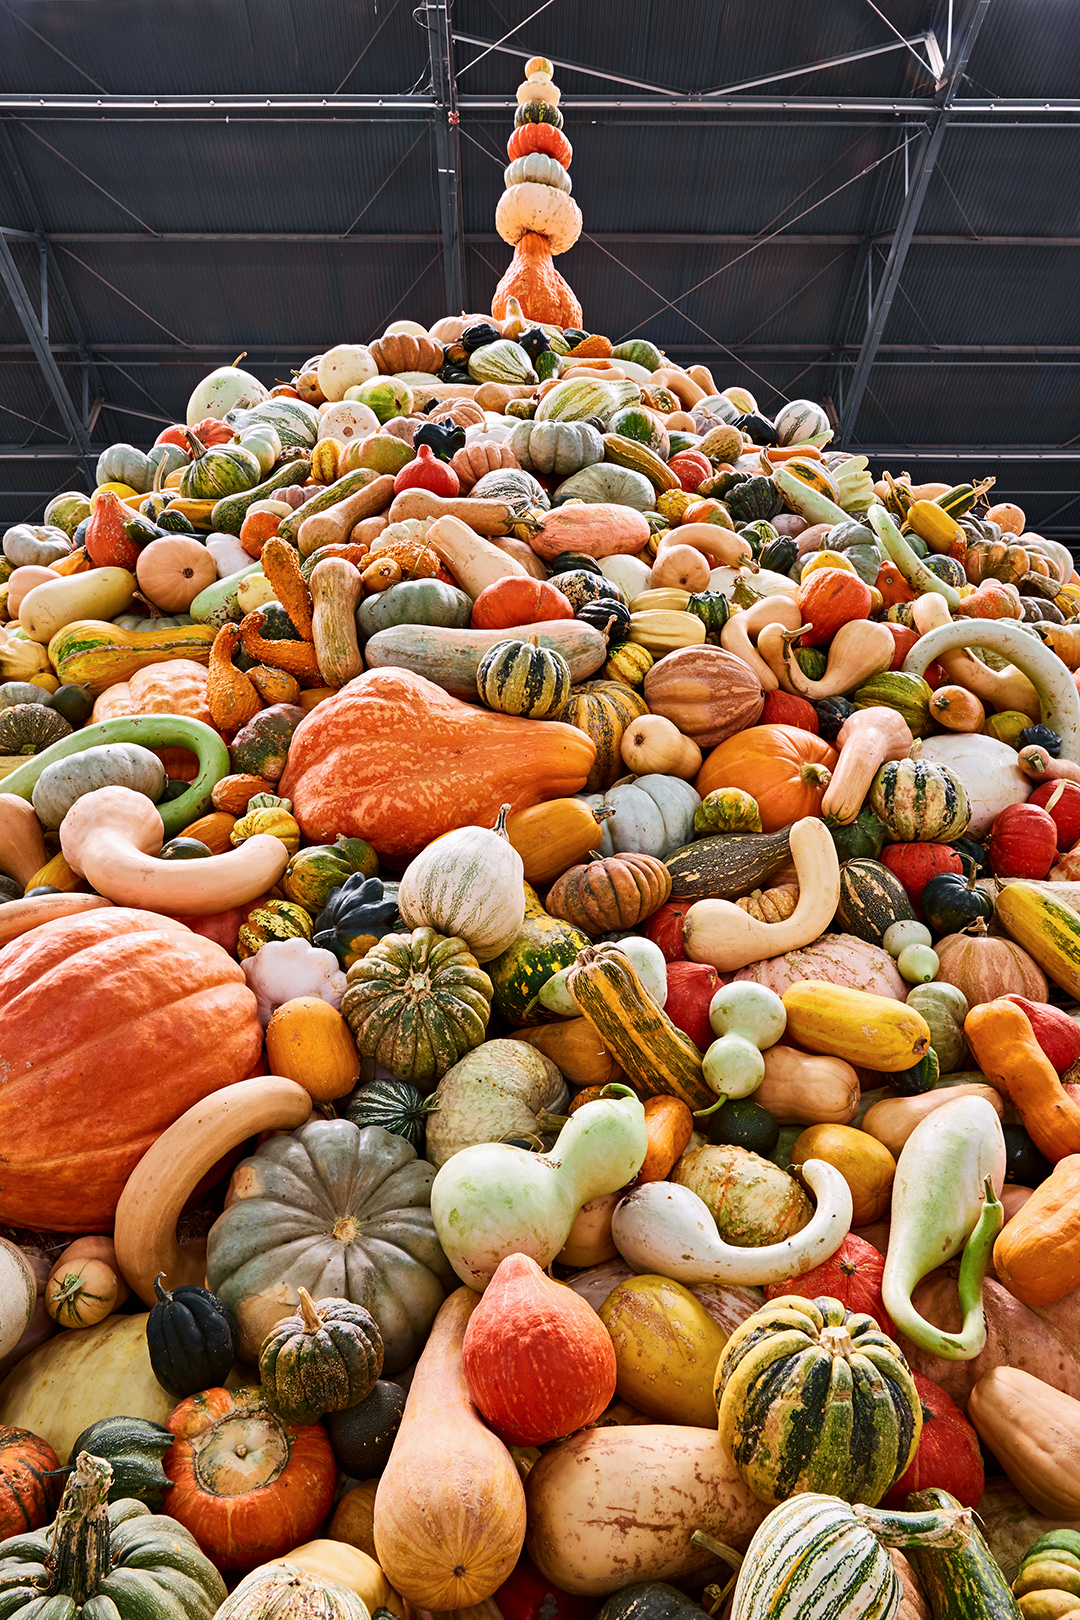 The National Heirloom Expo is the Ultimate Pumpkin Destination